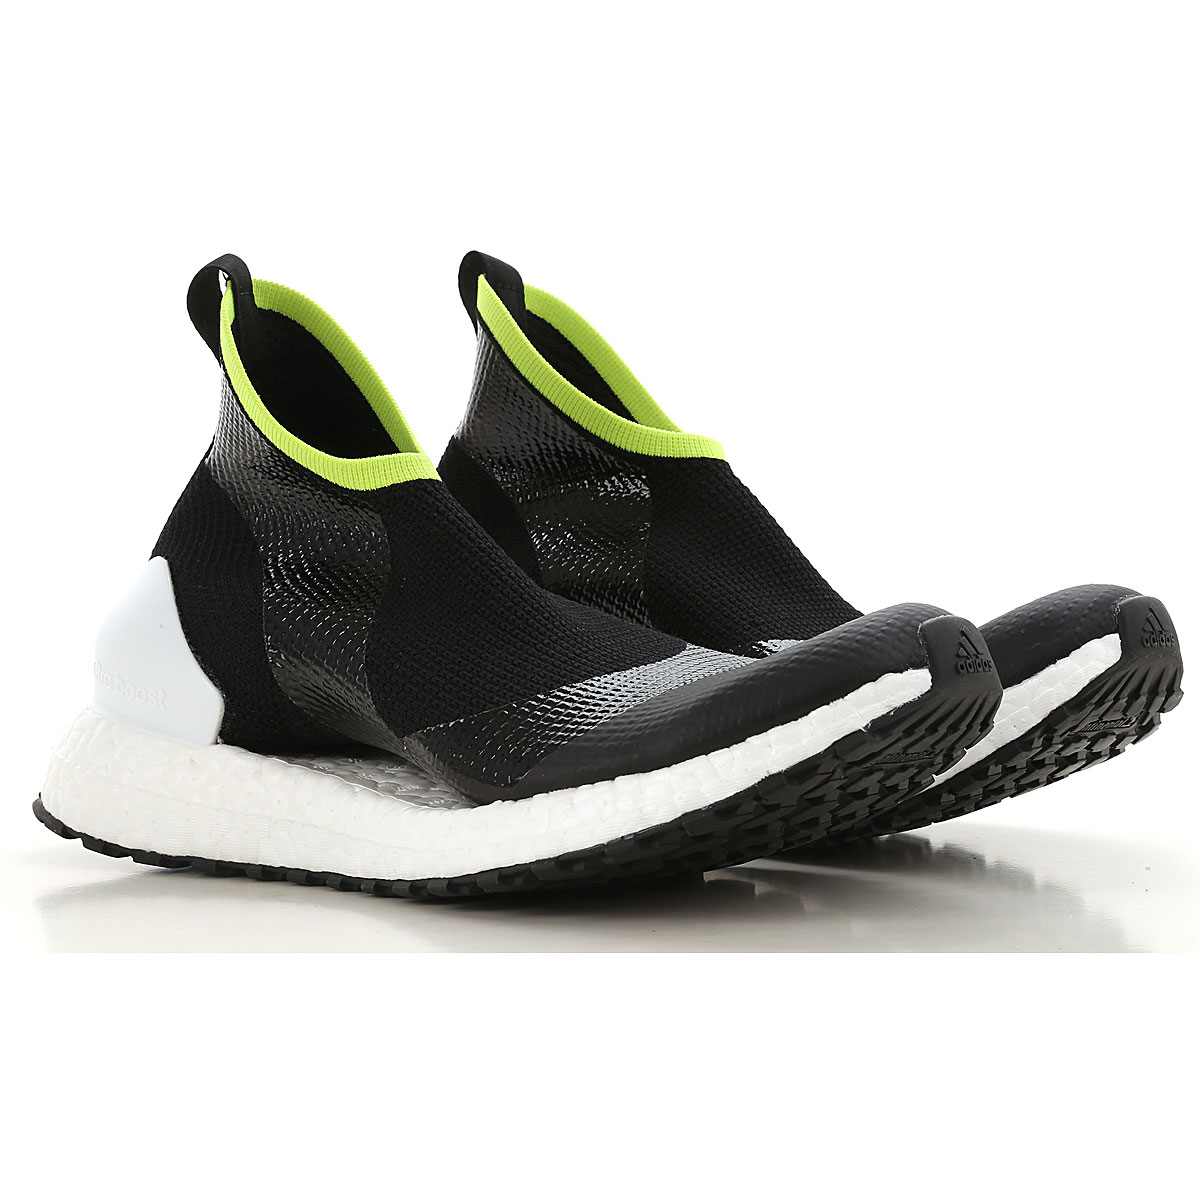 Adidas Sneakers for Women in Outlet Black USA - GOOFASH